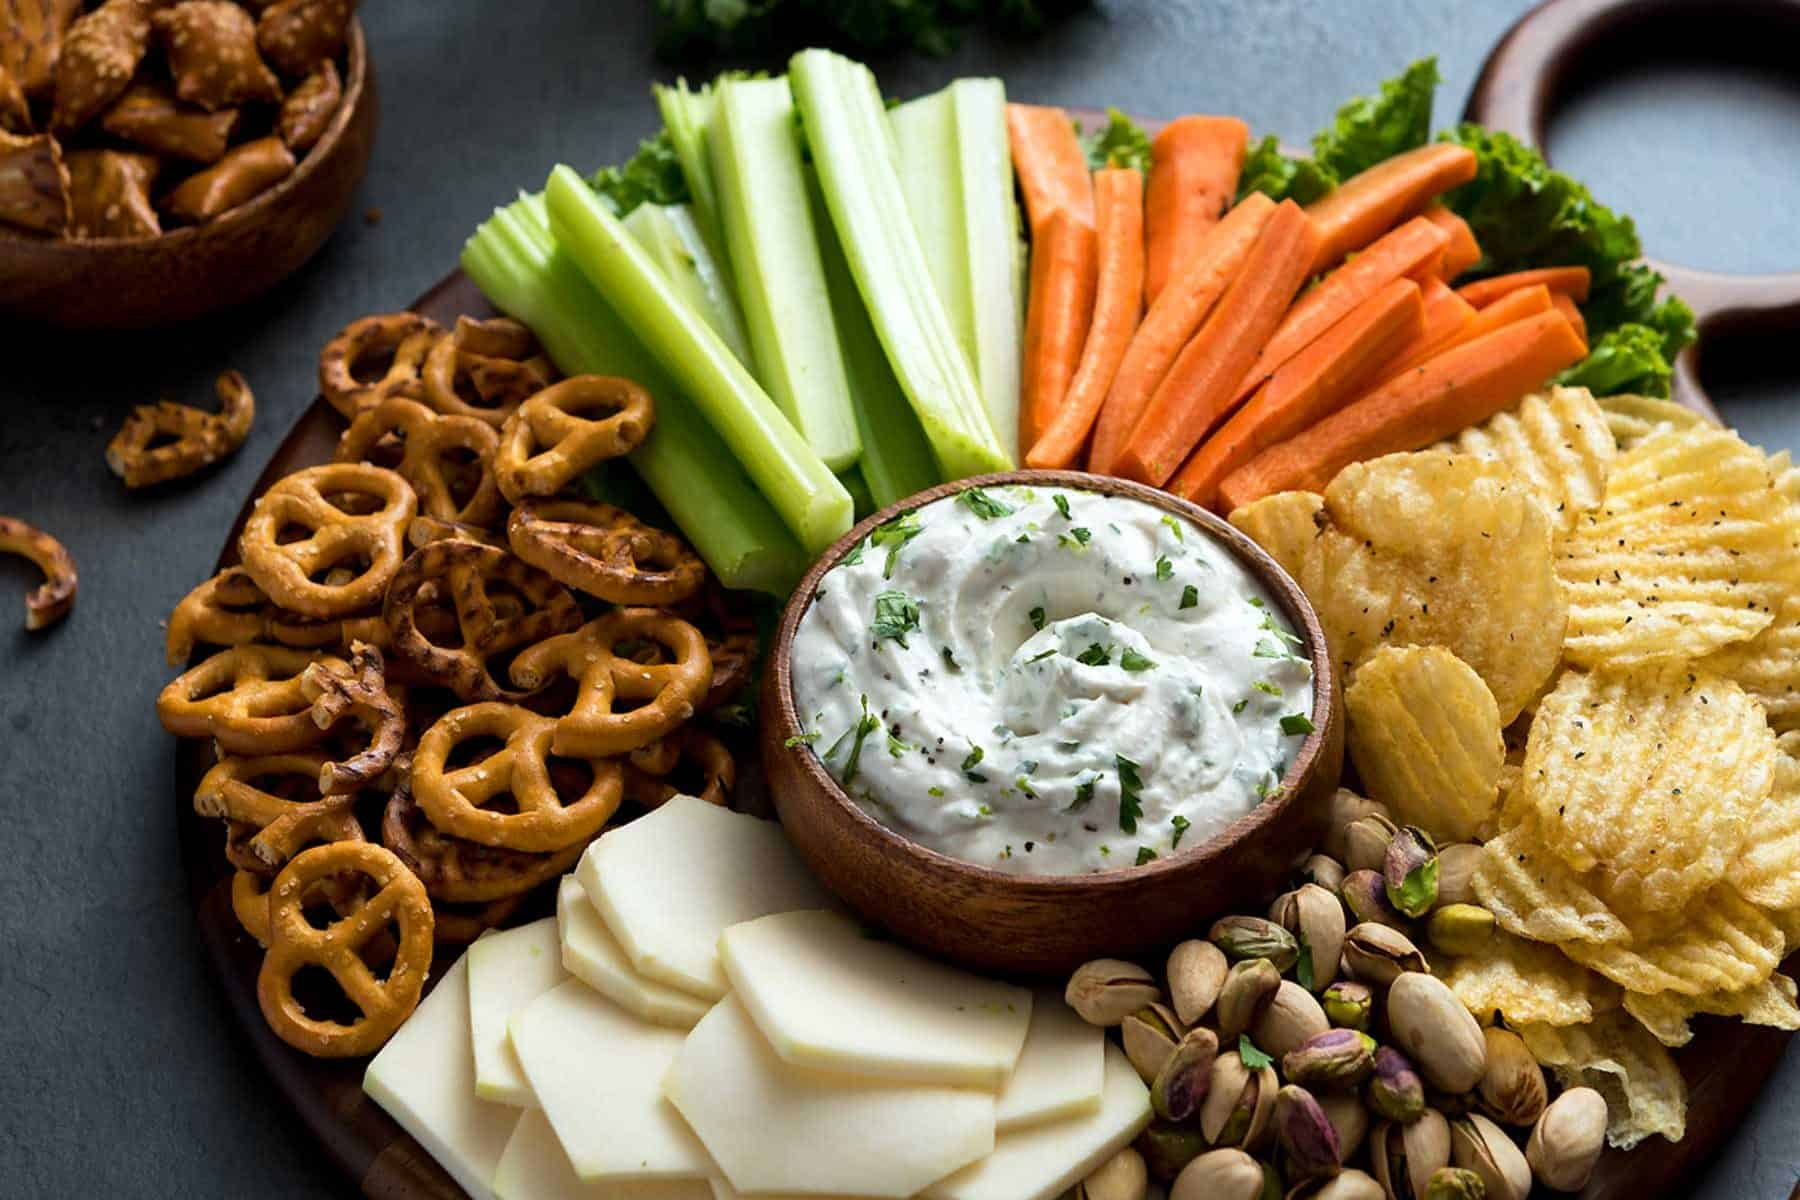 Cilantro Onion Dip Party Platter